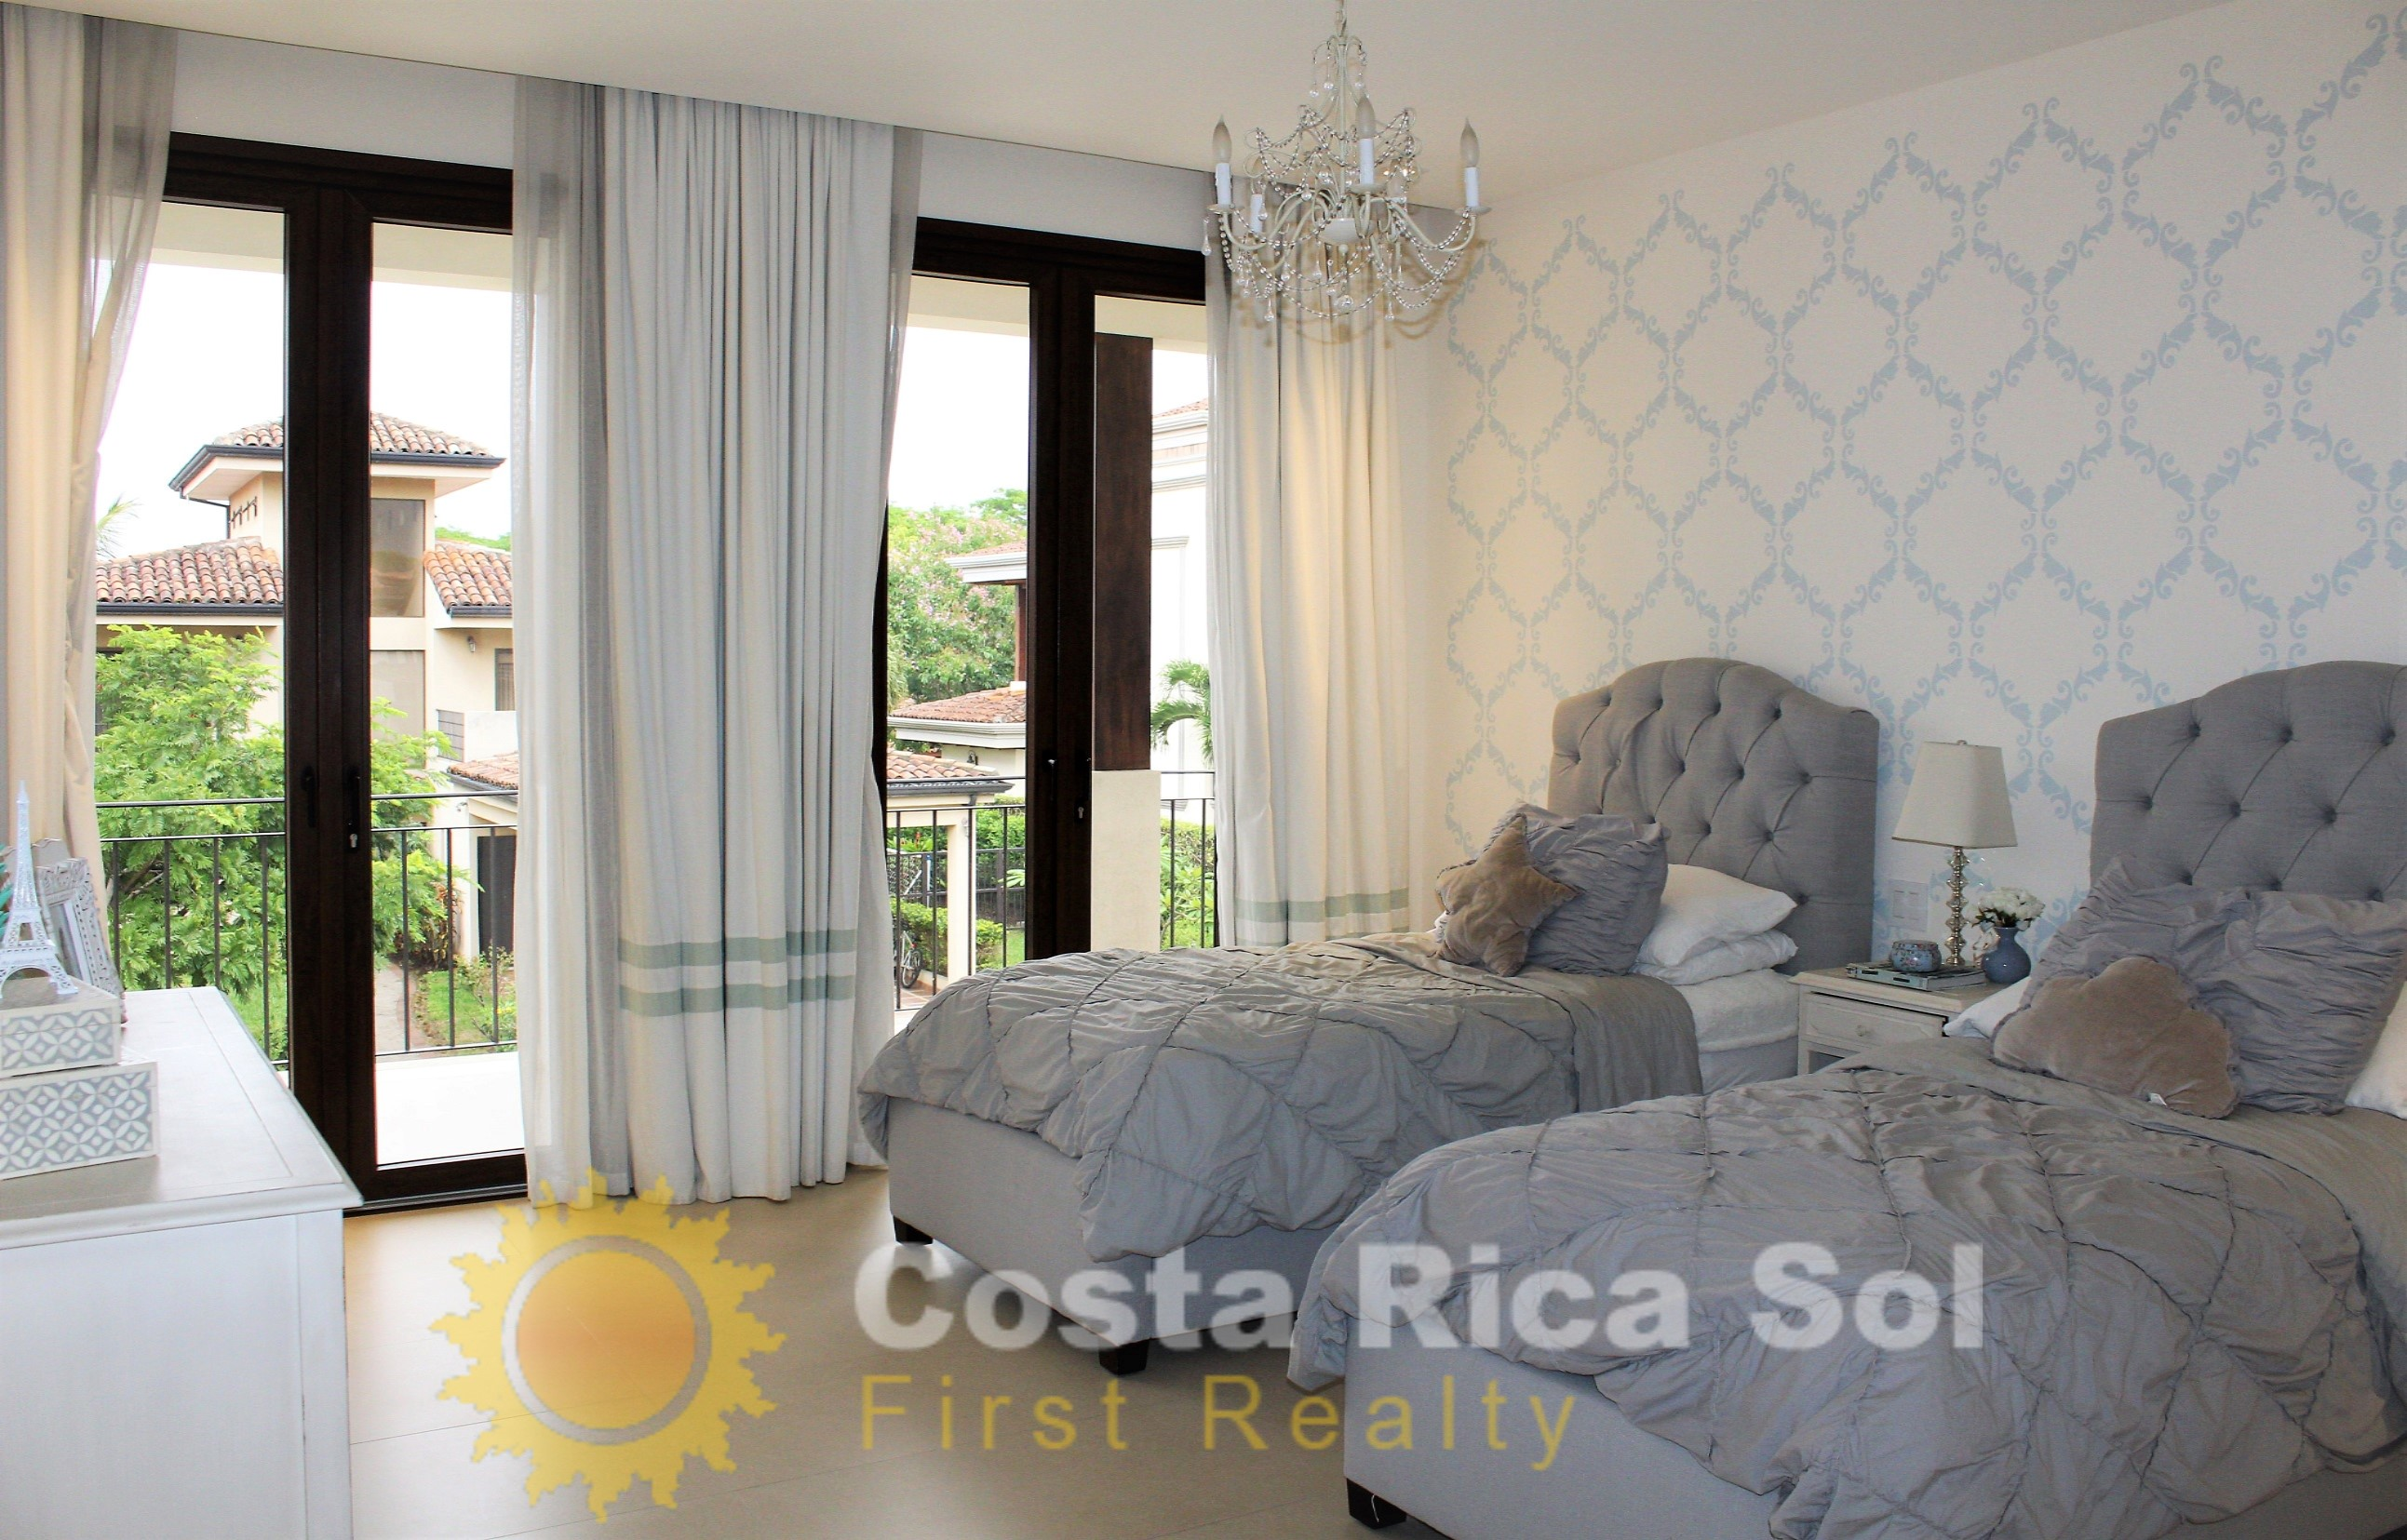 //costaricasol.com/images/jux_real_estate/realties/IMG_09041.jpg